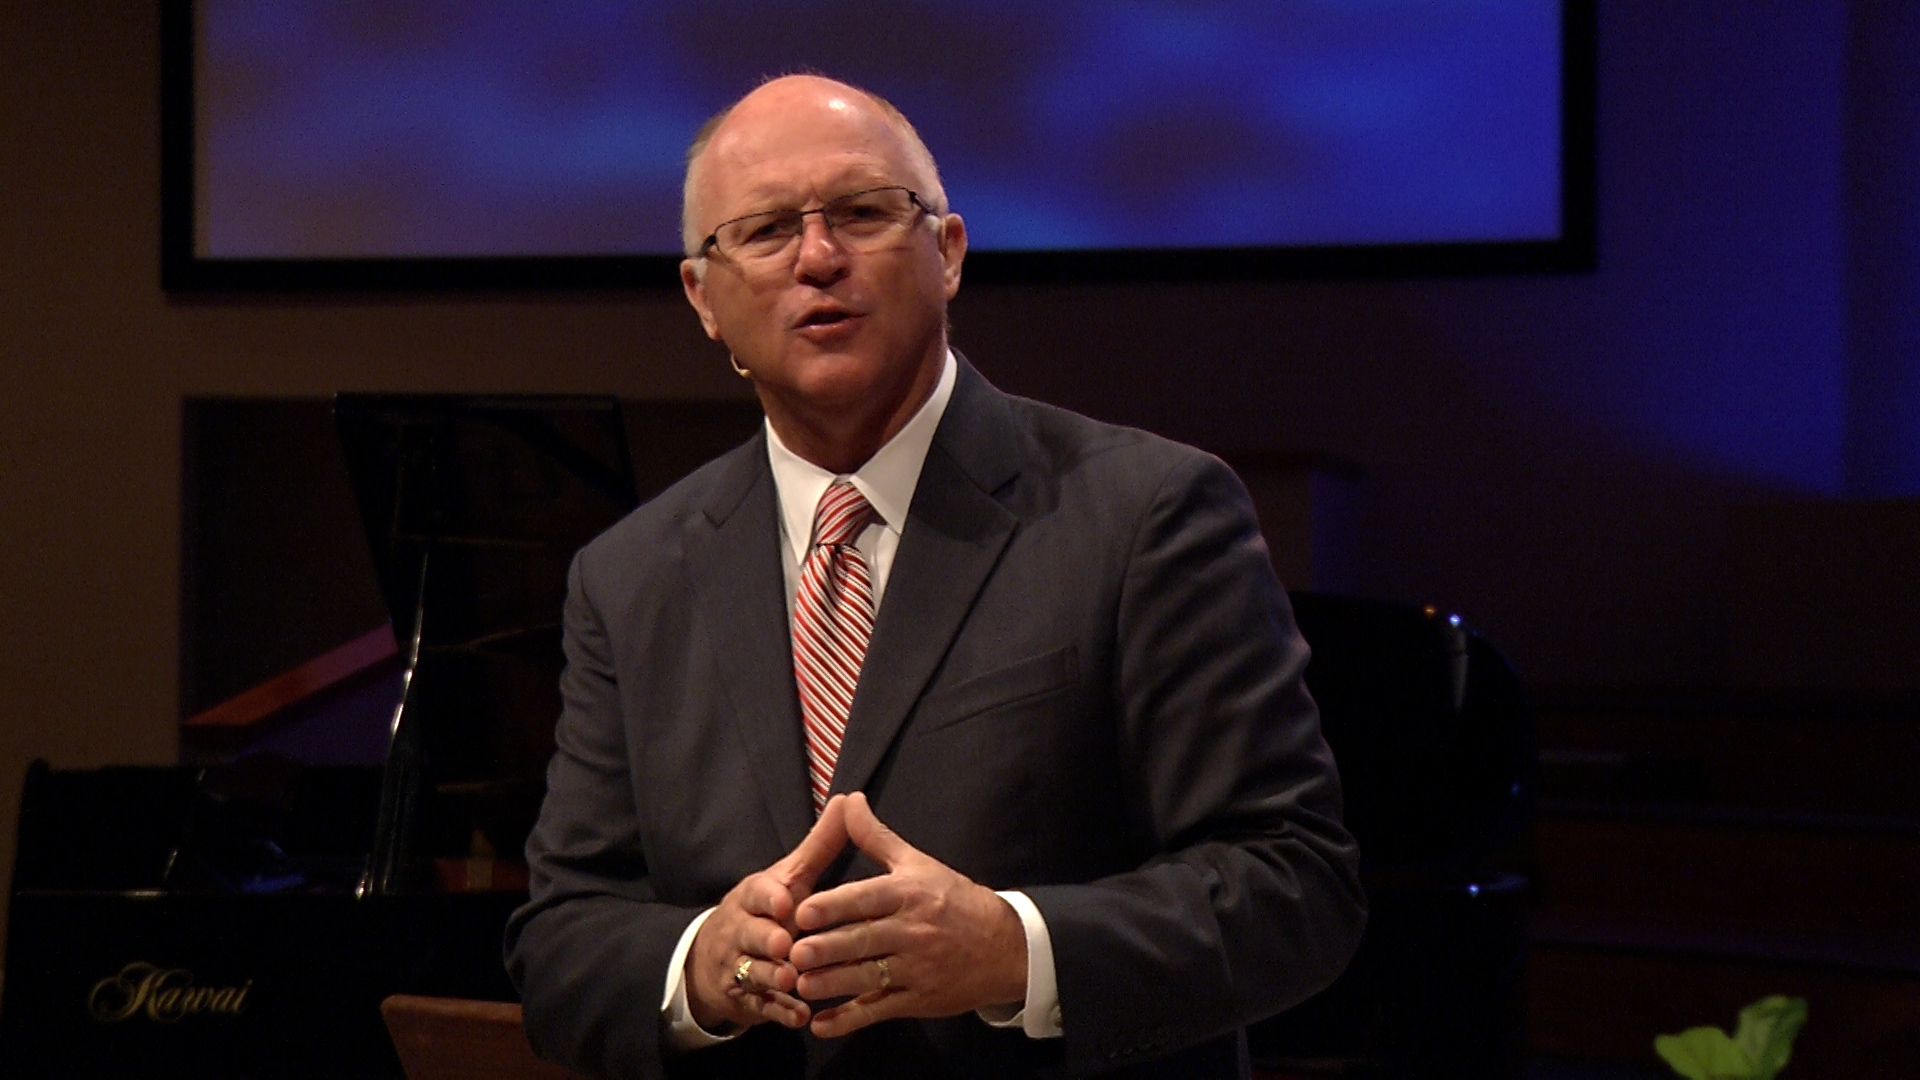 Pastor Paul Chappell: Unity in the Gospel